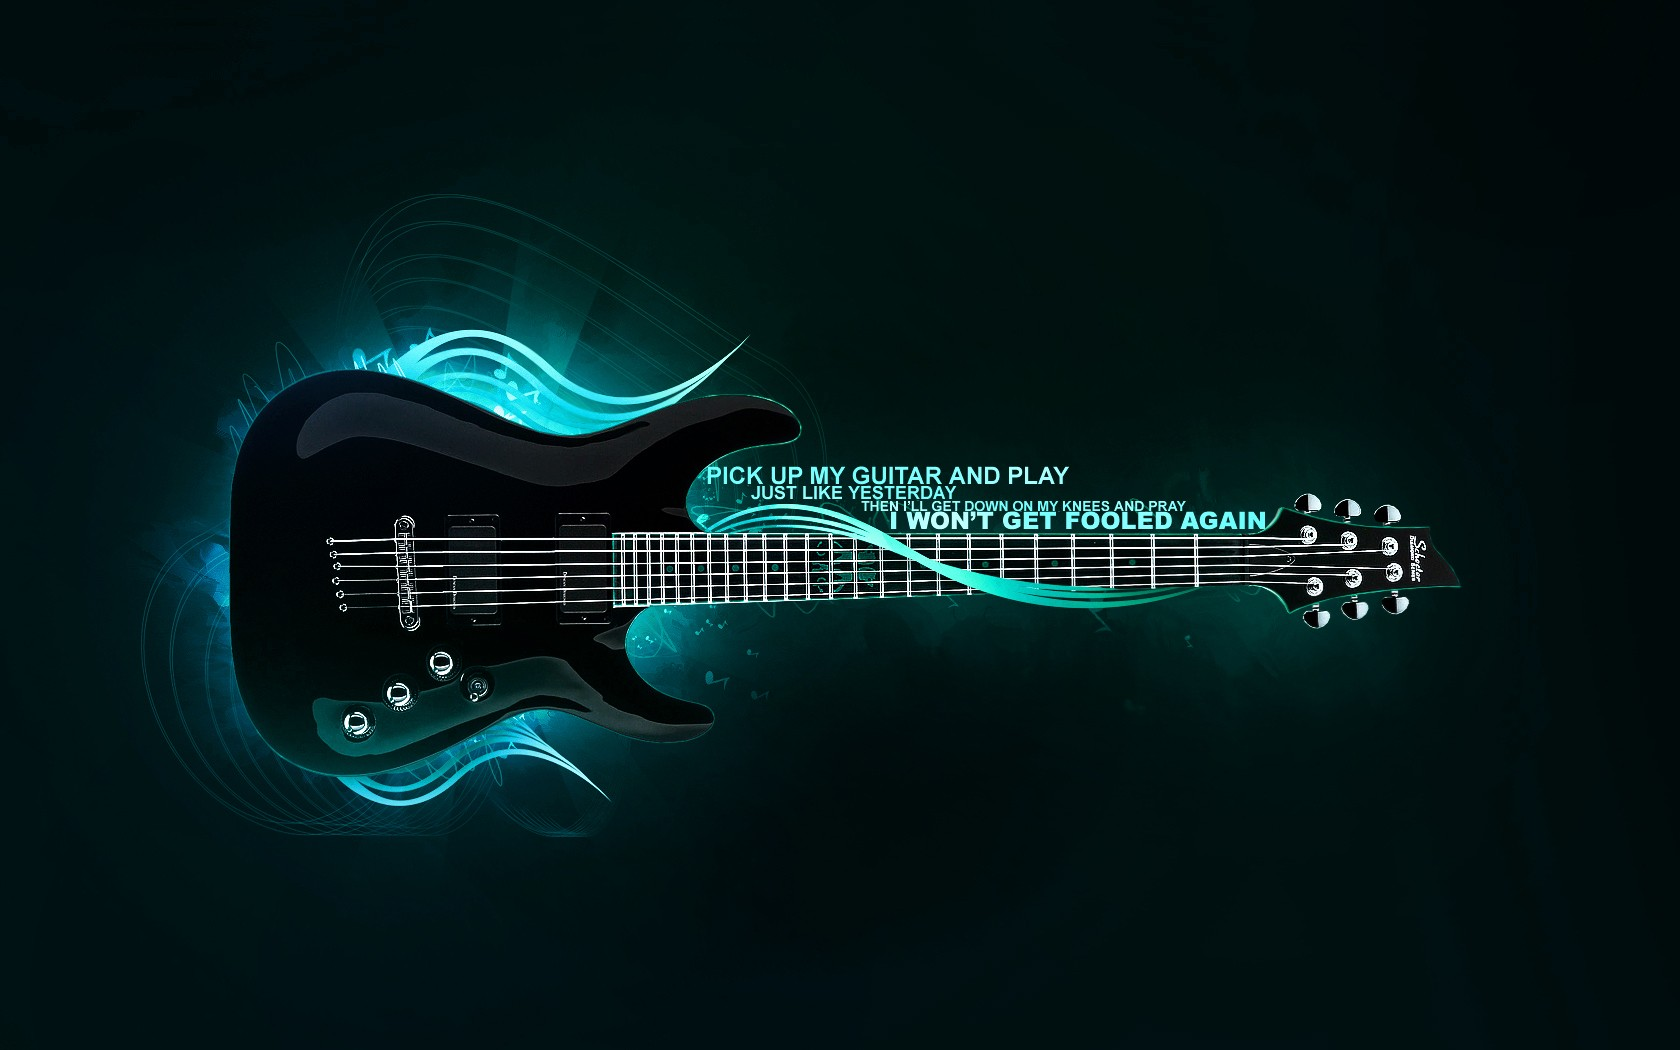 Pick Up My Guitar And Play Wallpaper 1680x1050 px